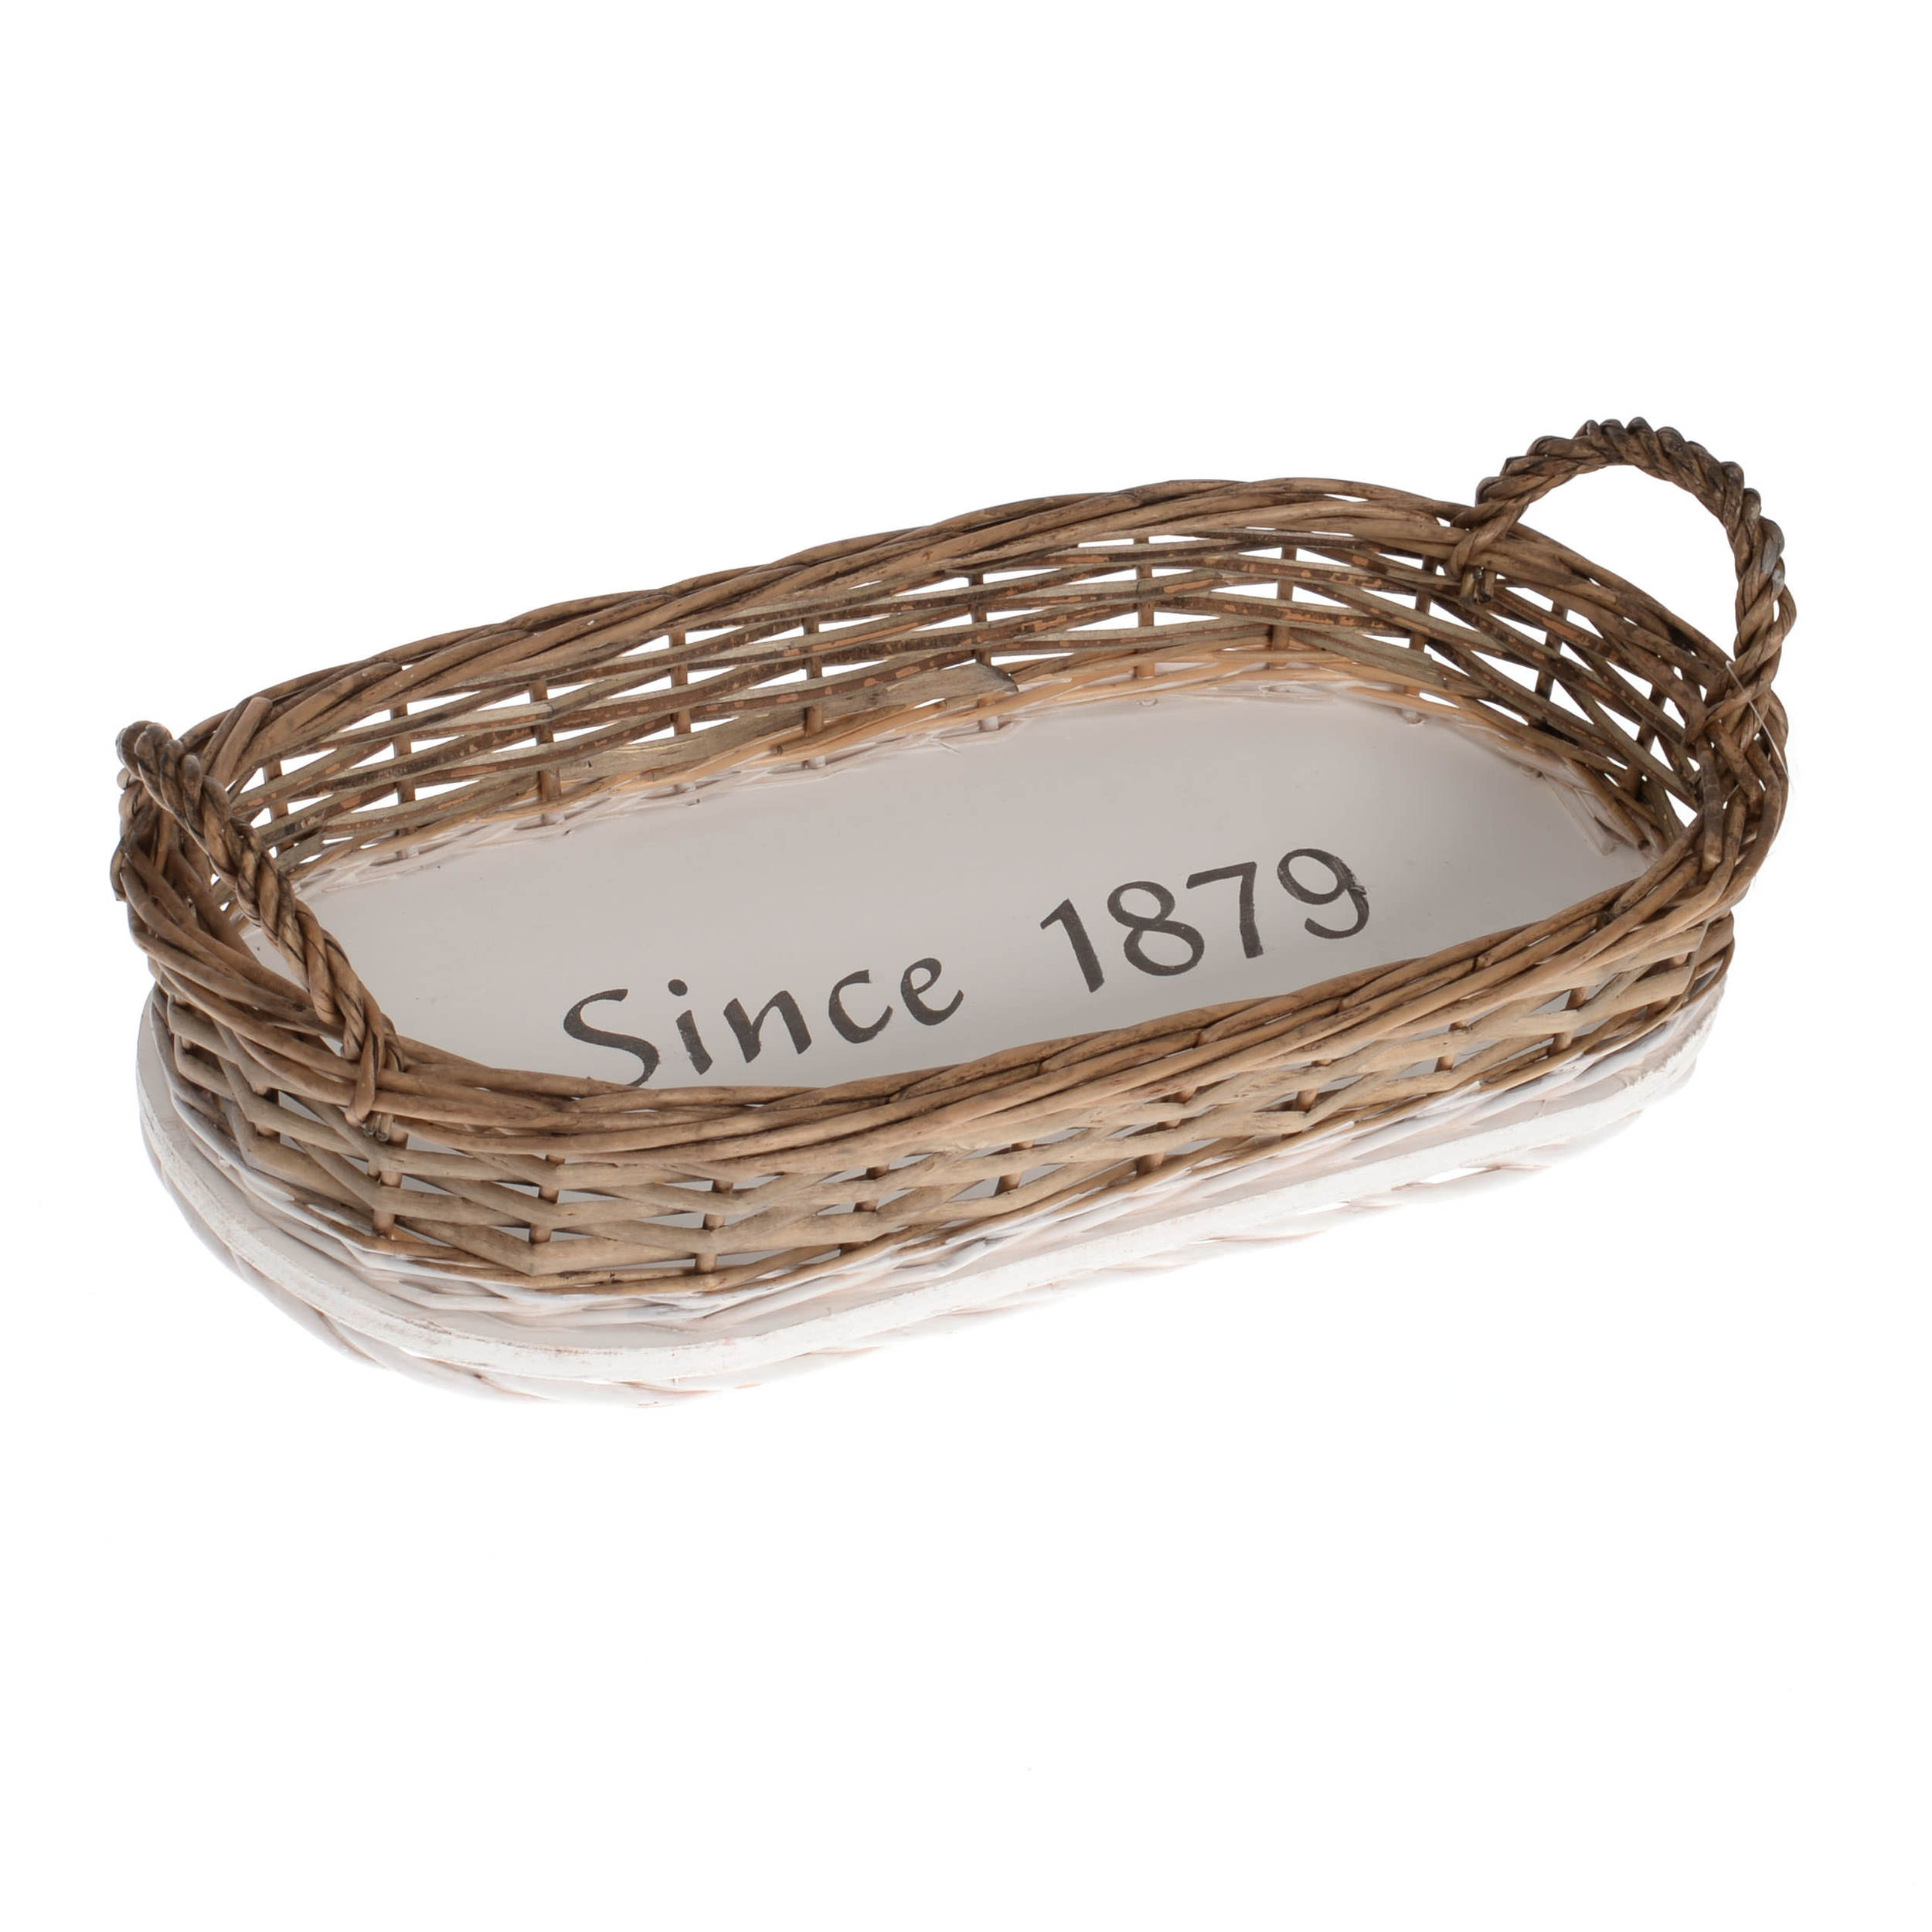 €25 WILLOW/MDF TRAY  'SINCE 1879' 44X22X10